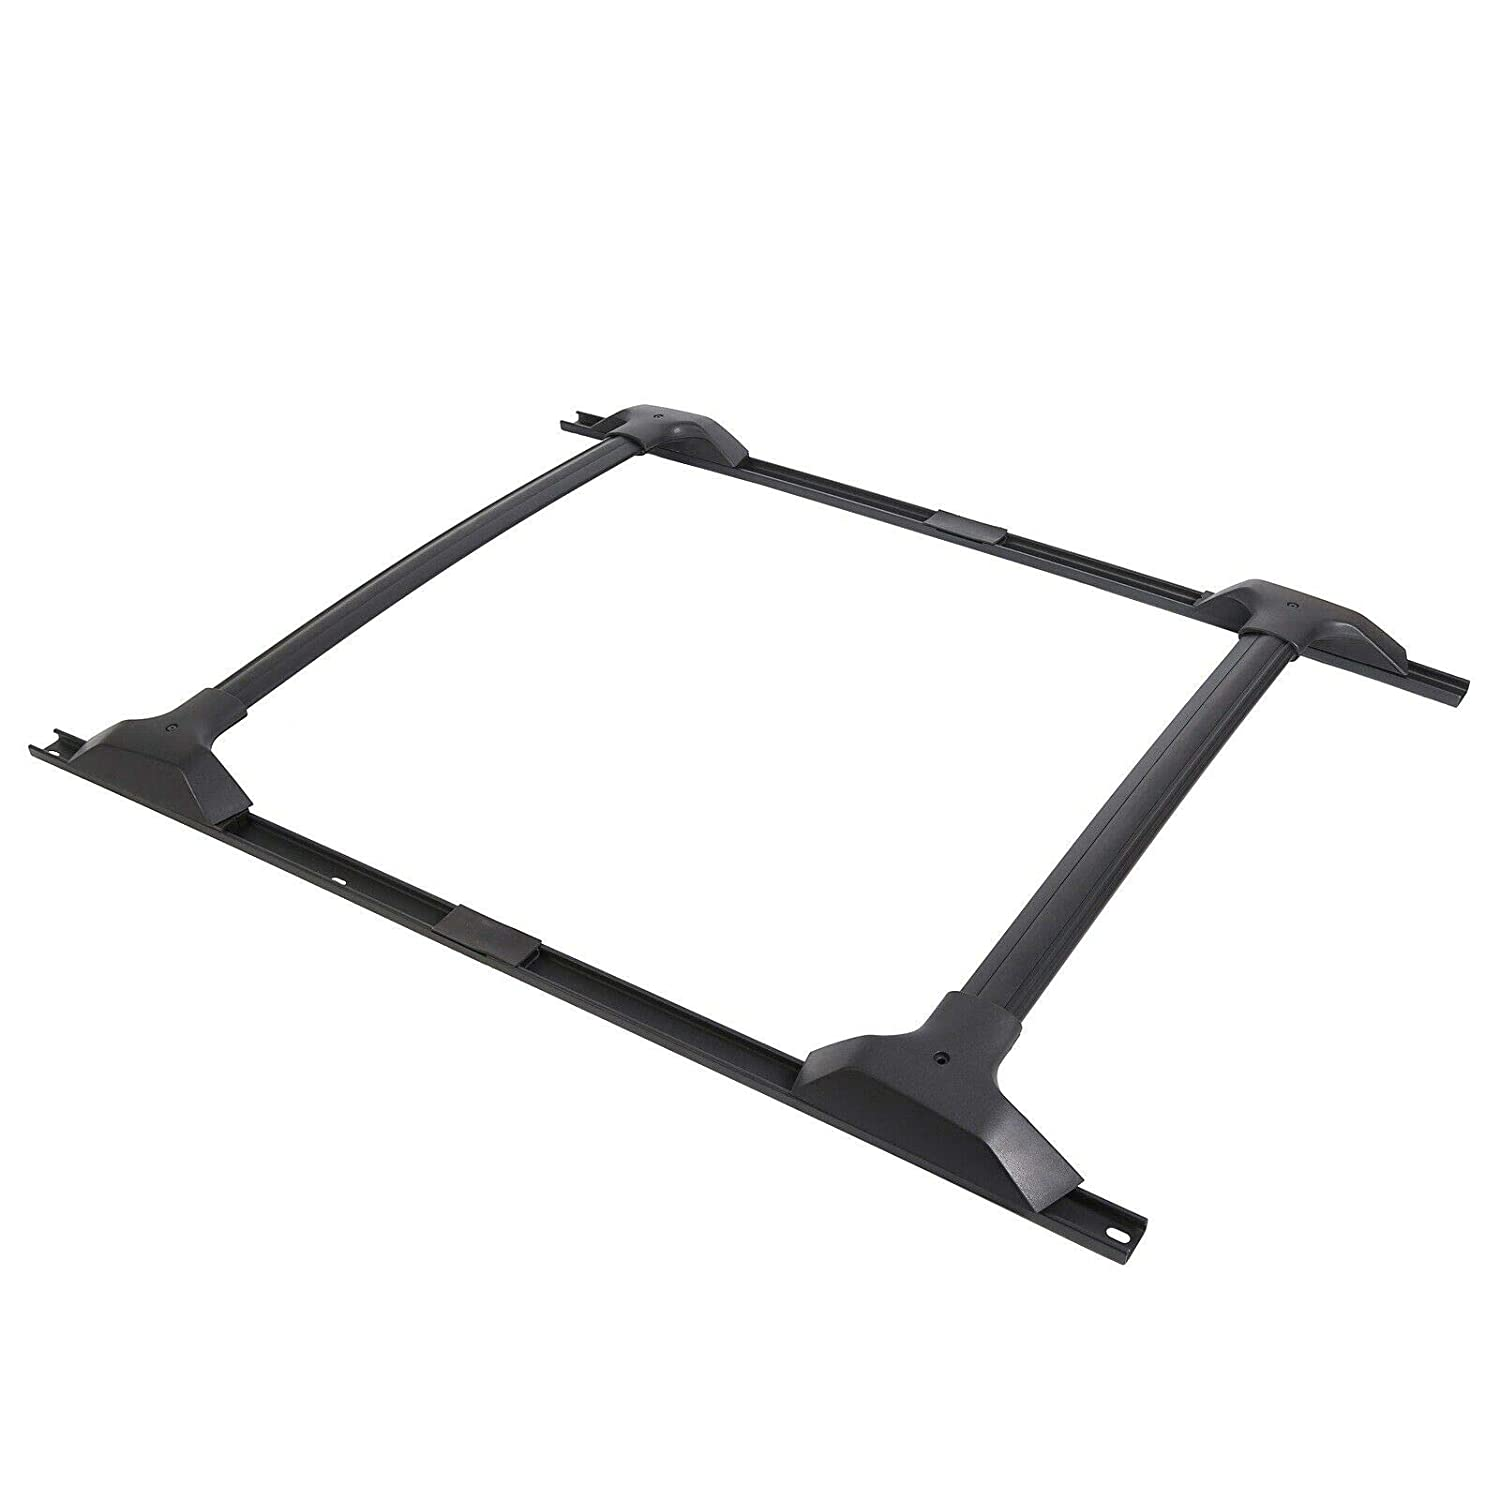 Roof Cross Bars NO7RUBAN Roof Rack Cross Bars /& Side Rail Package for 2009-2017 Chevy Chevrolet Traverse Sport Utility Aluminum Part # 19244268